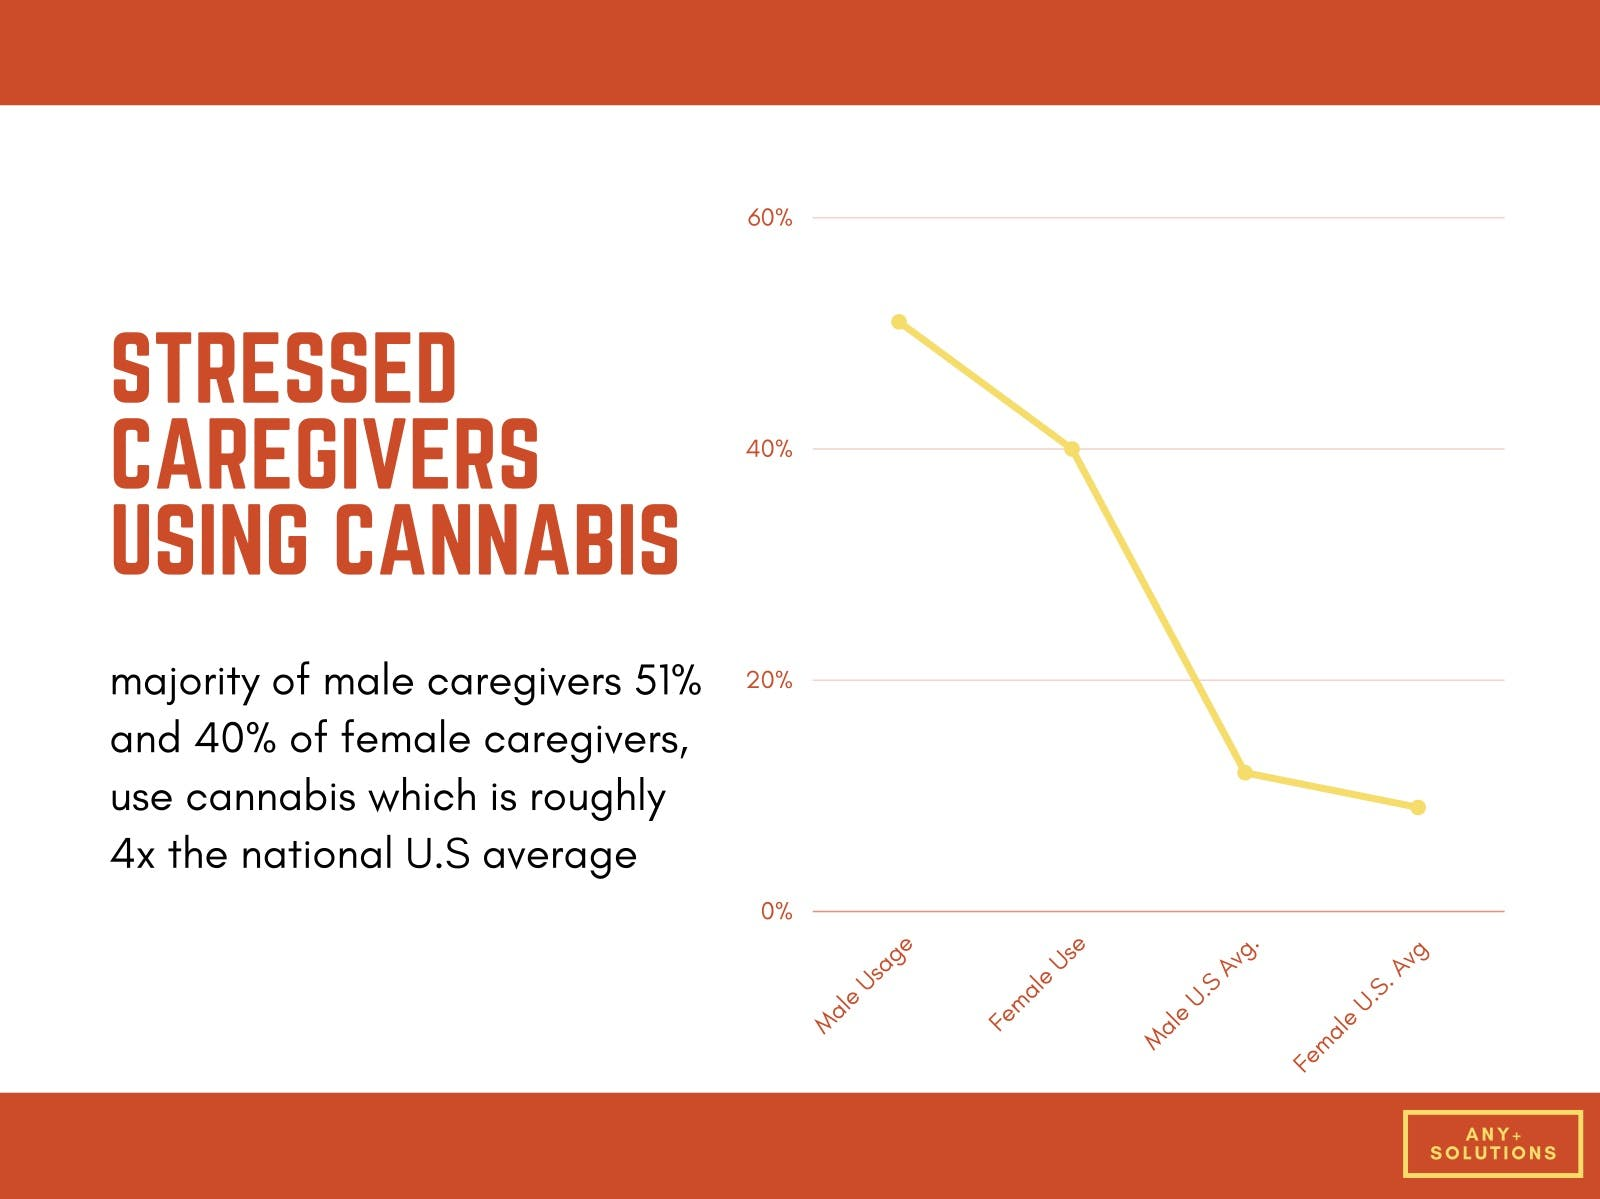 A line graph showing that a majority of male caregivers (51%) and 40% of female caregivers use cannabis, which is roughly 4x the national U.S. average.